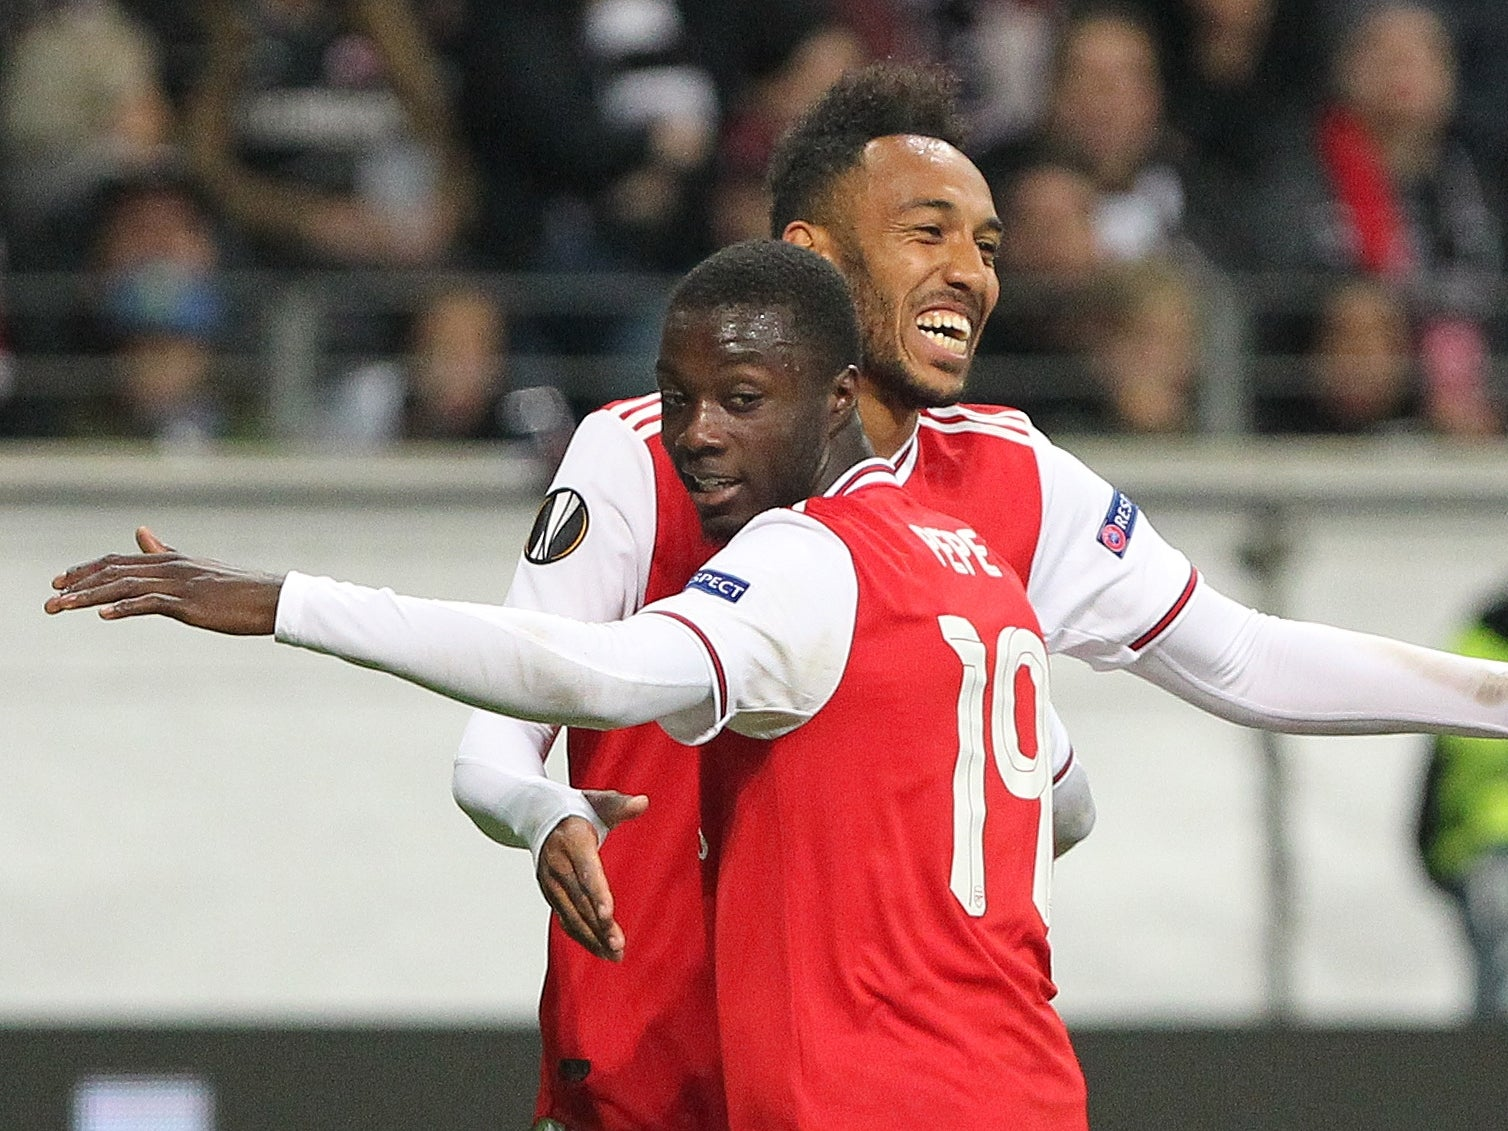 Frankfurt vs Arsenal: Five things we learned from the young Gunners' impressive Europa League victory